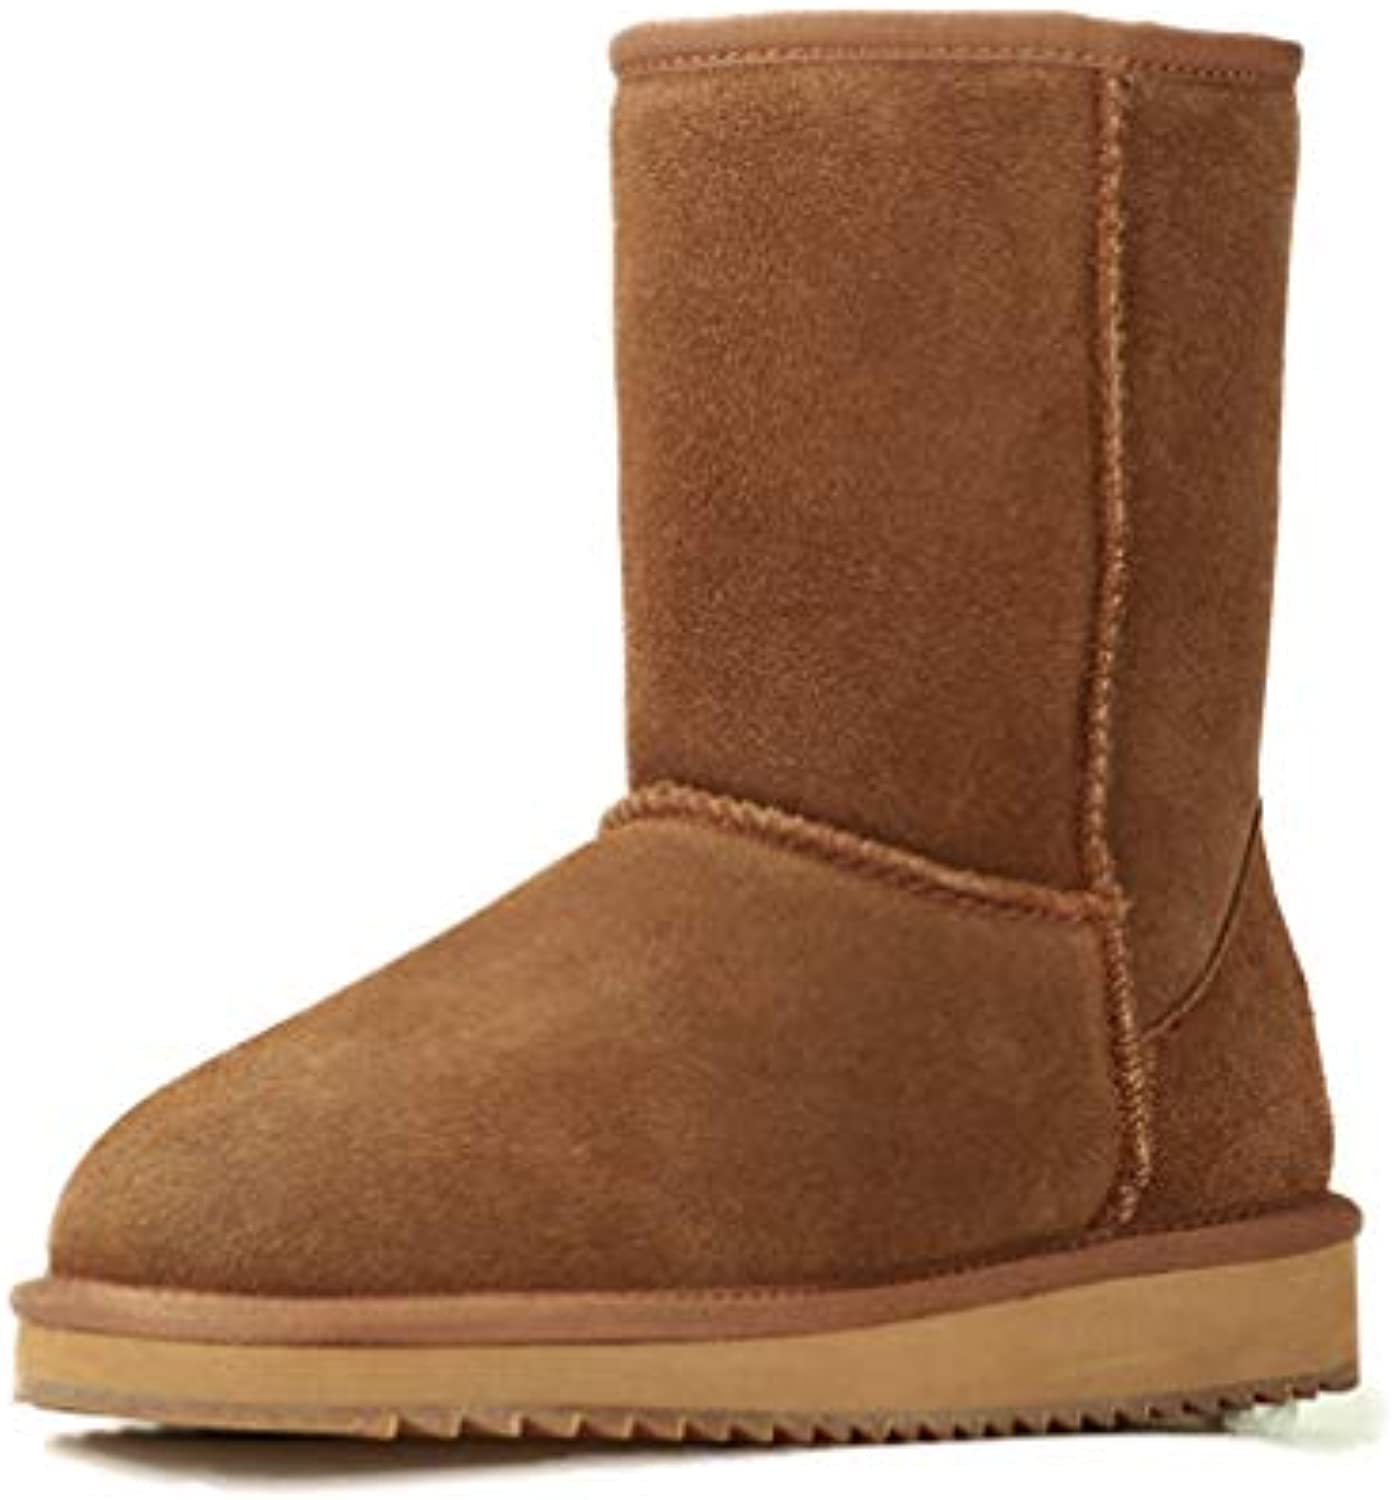 T-JULY New Wool Snow Boots Women Comfortable Winter Boots Females Fashion Boots with Fur Genuine Leather Women shoes